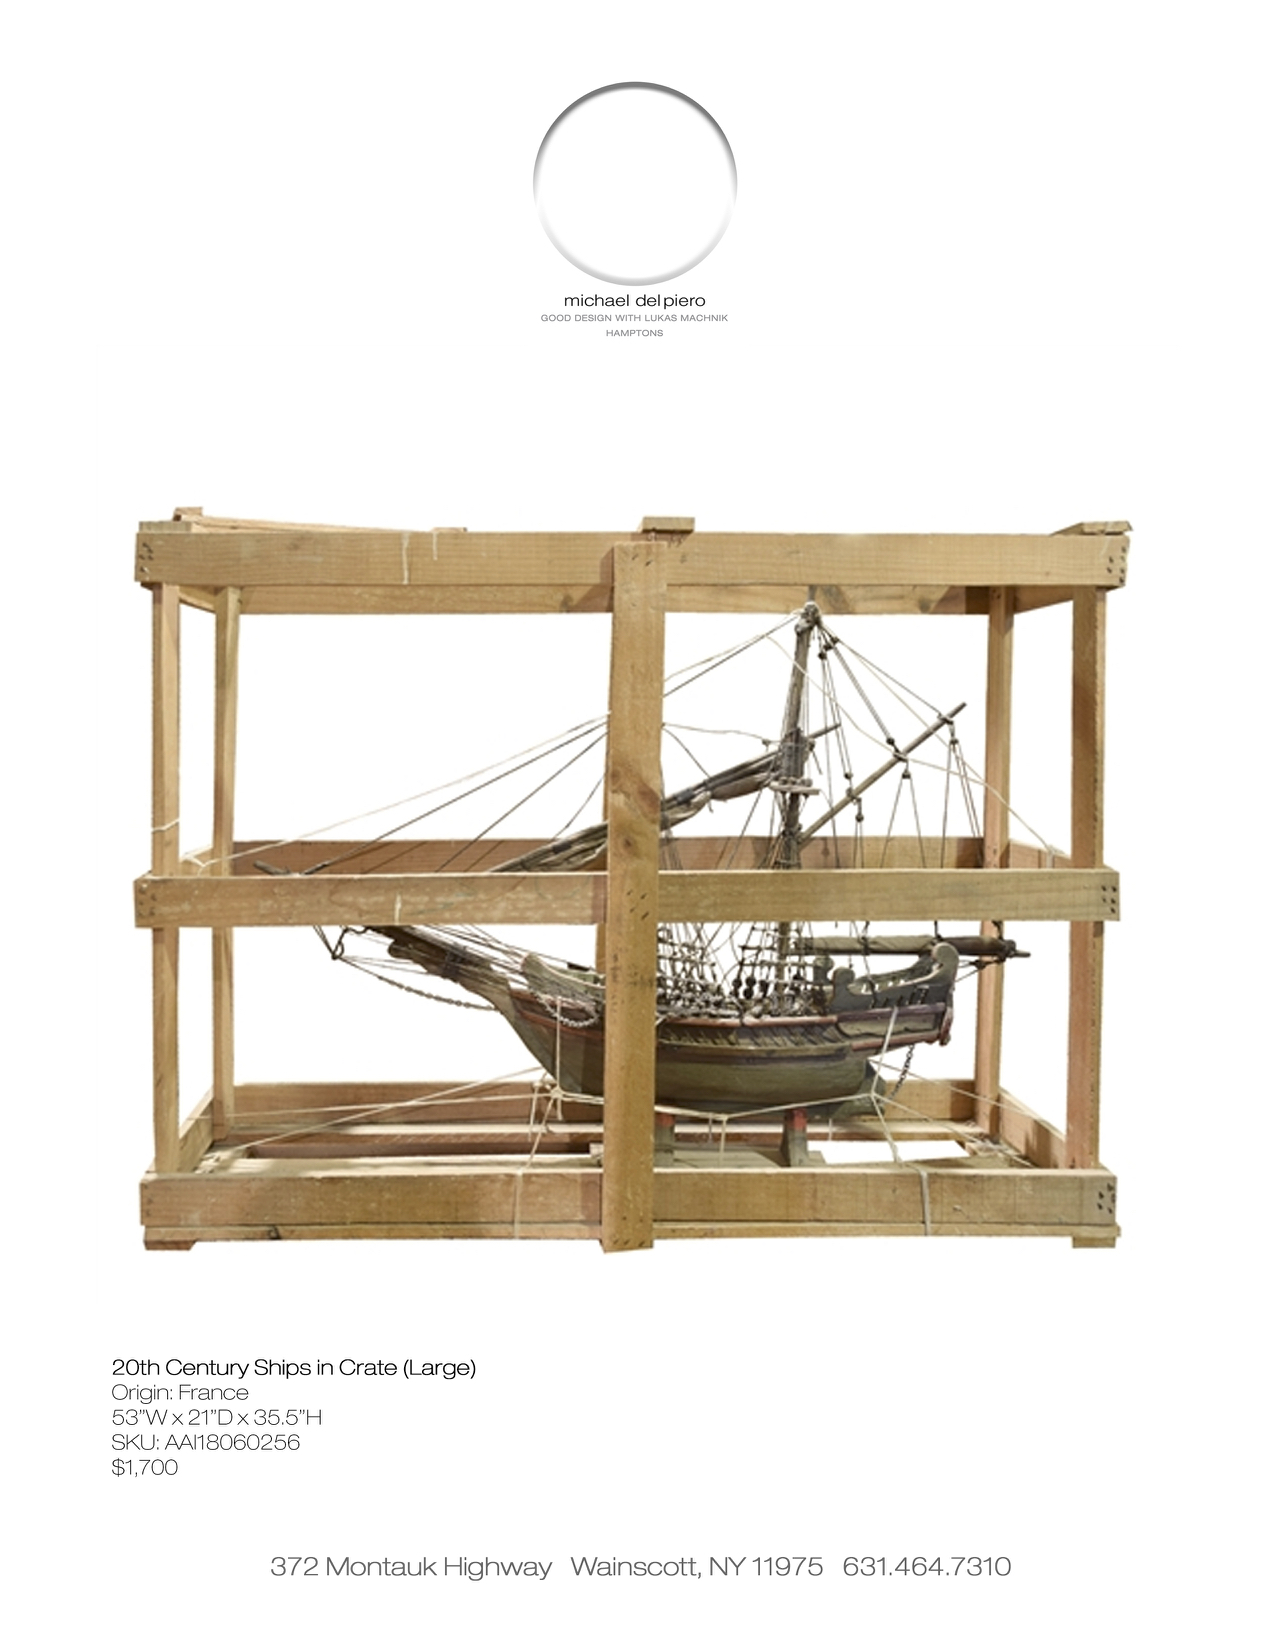 AAI18060256 20th Century Ships in Crate (Large).jpg